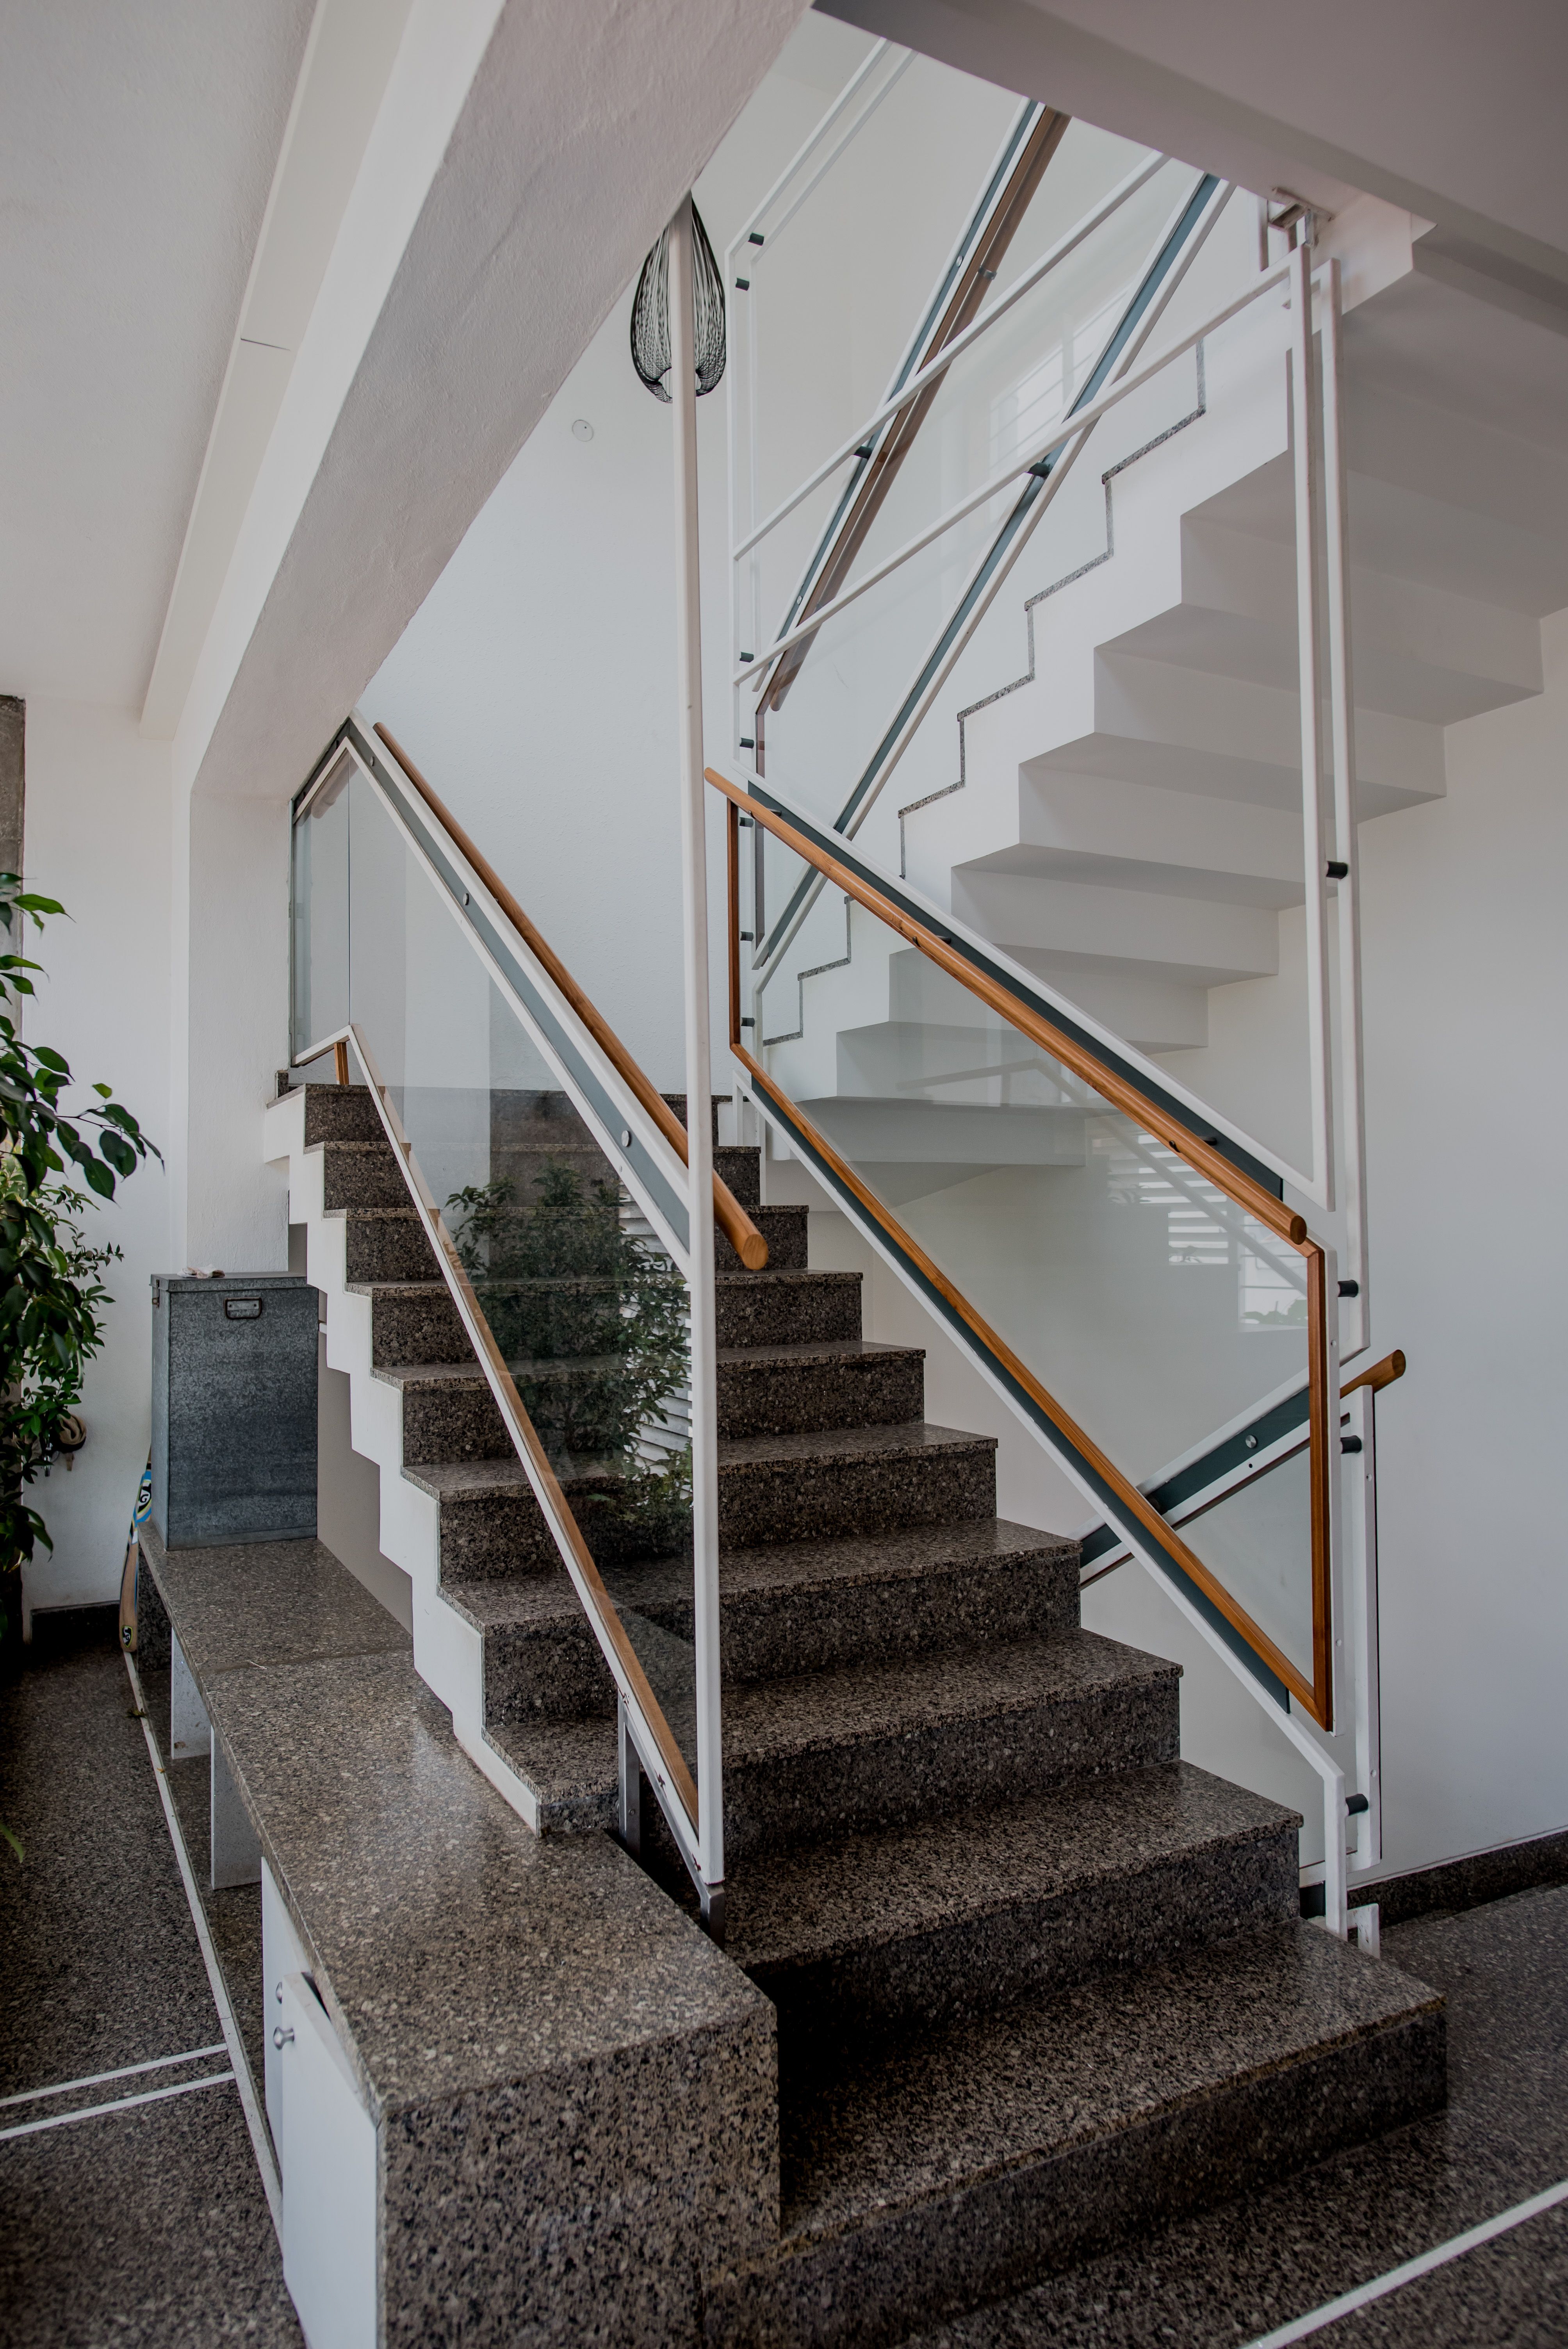 View of Staircase leading to first floor